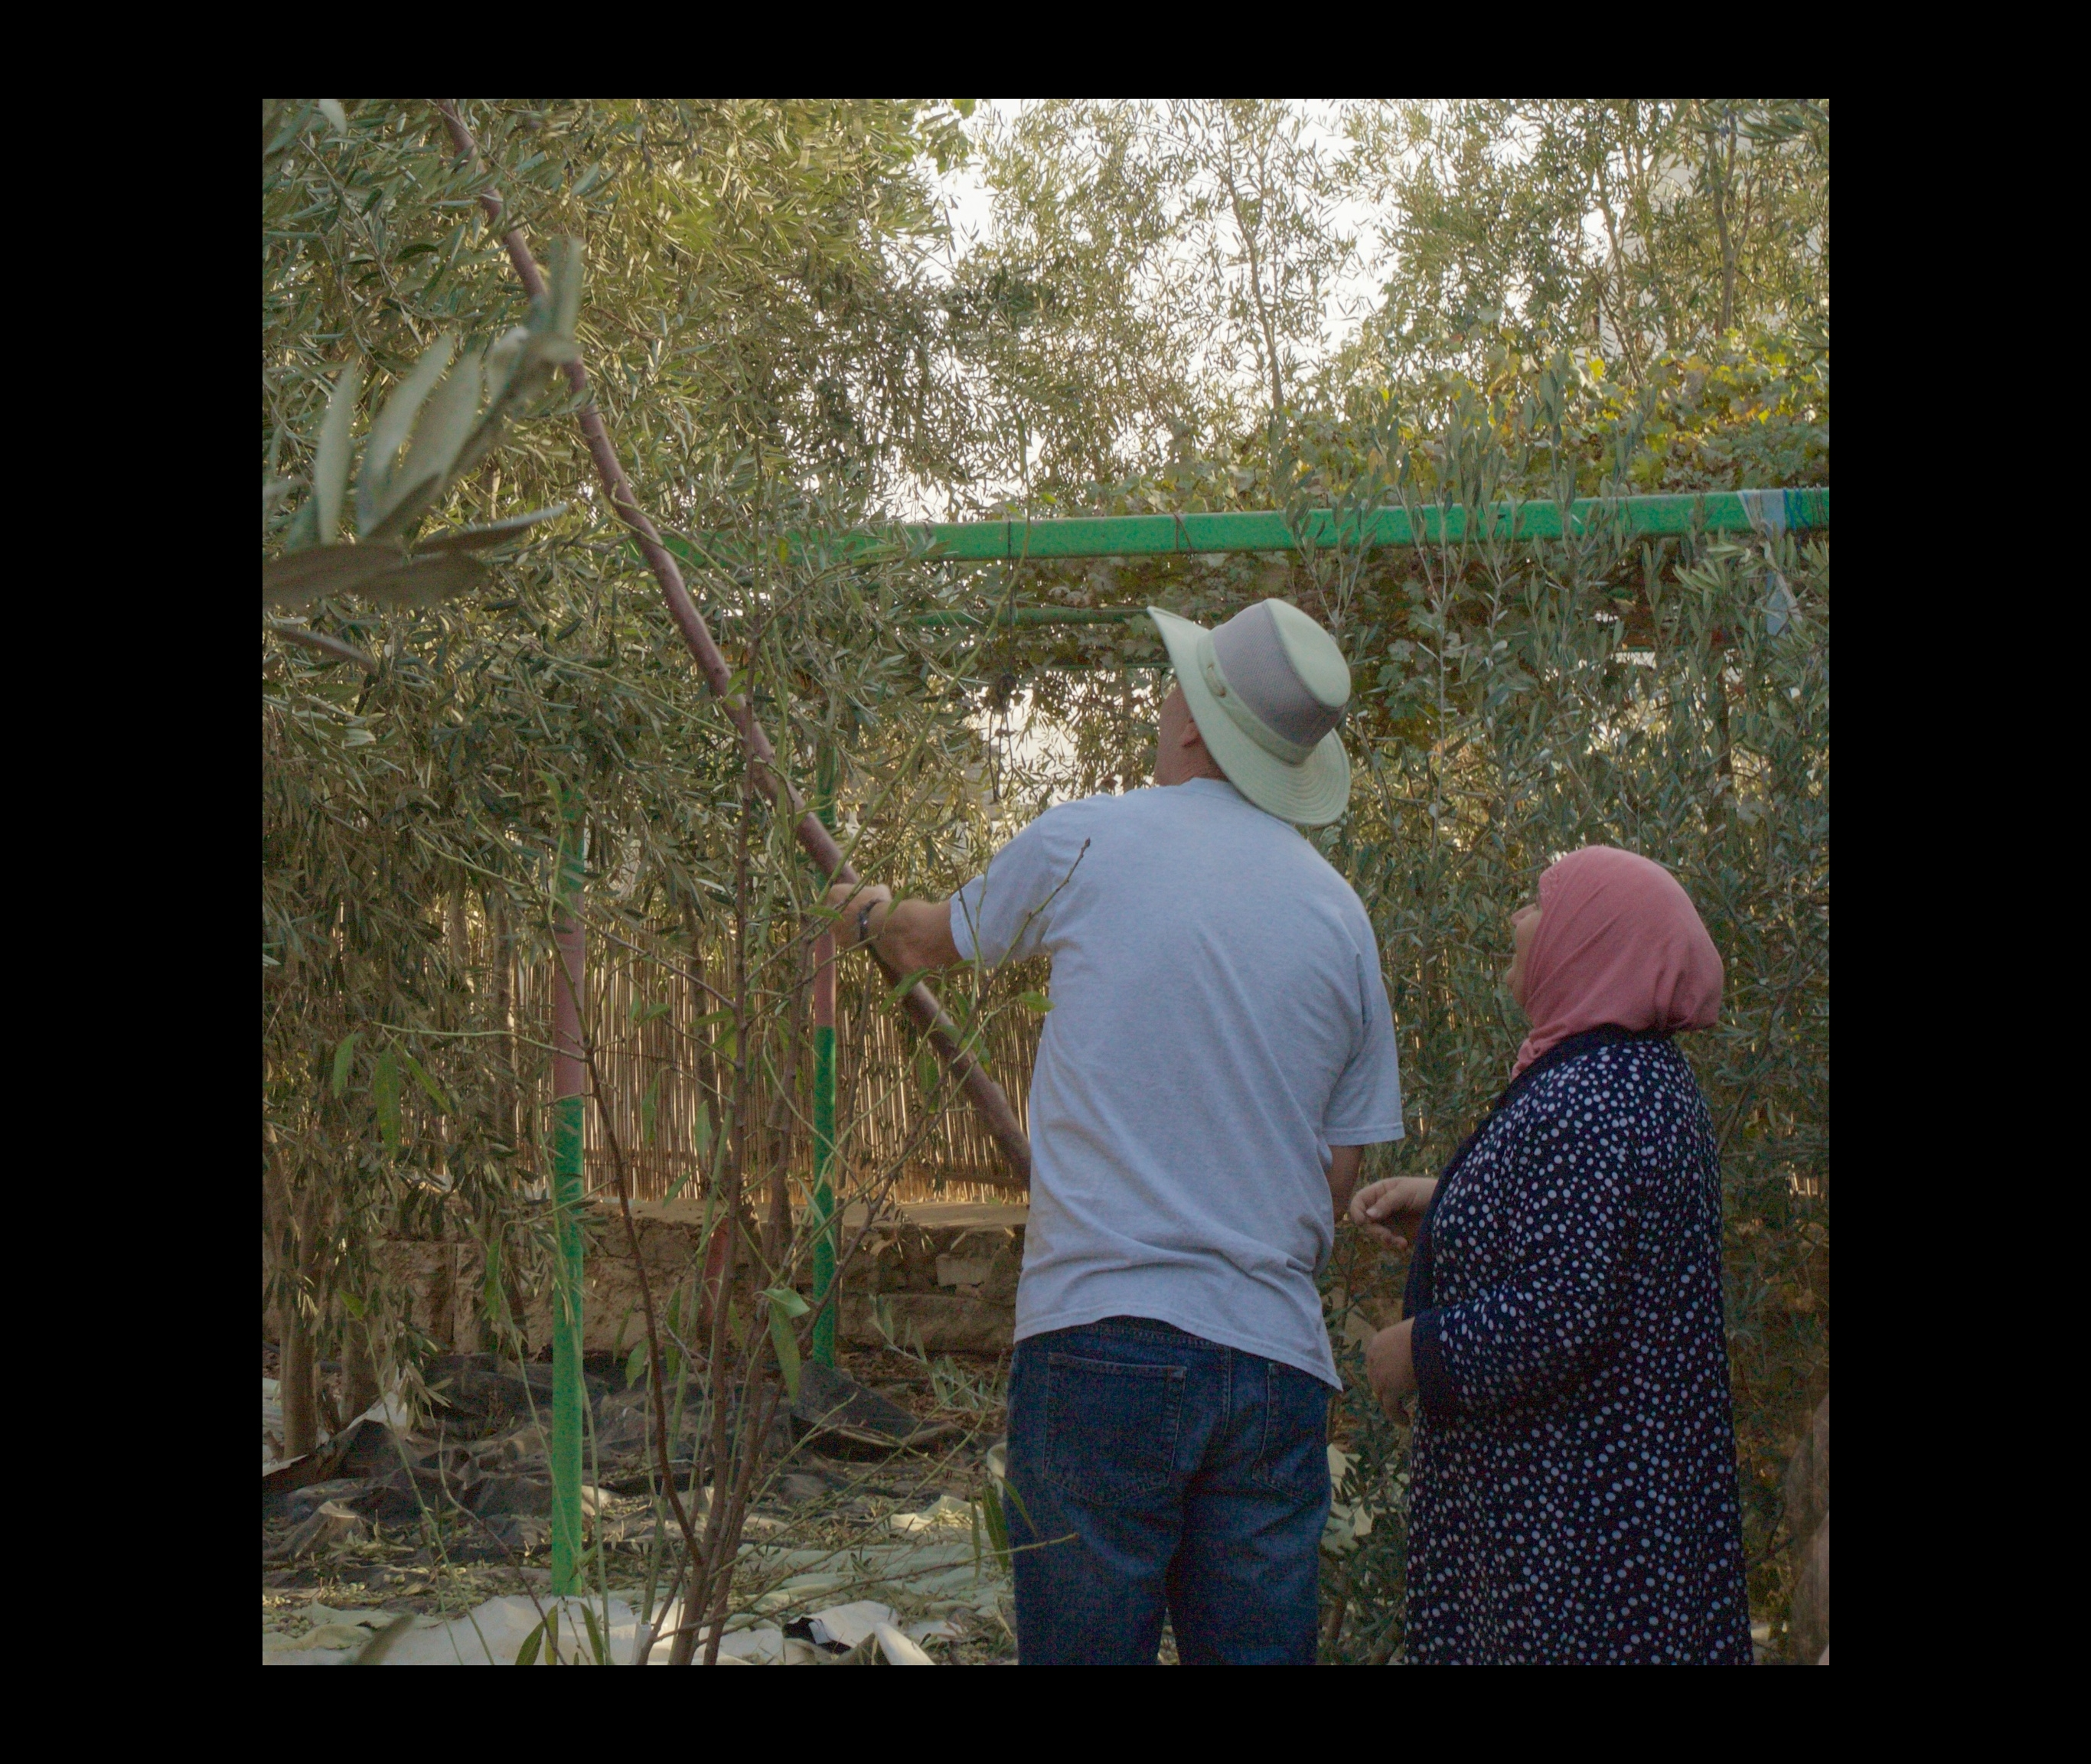 homestay with Remah Abbas and her husband Ahmid. Burkin, Palestine. 56659